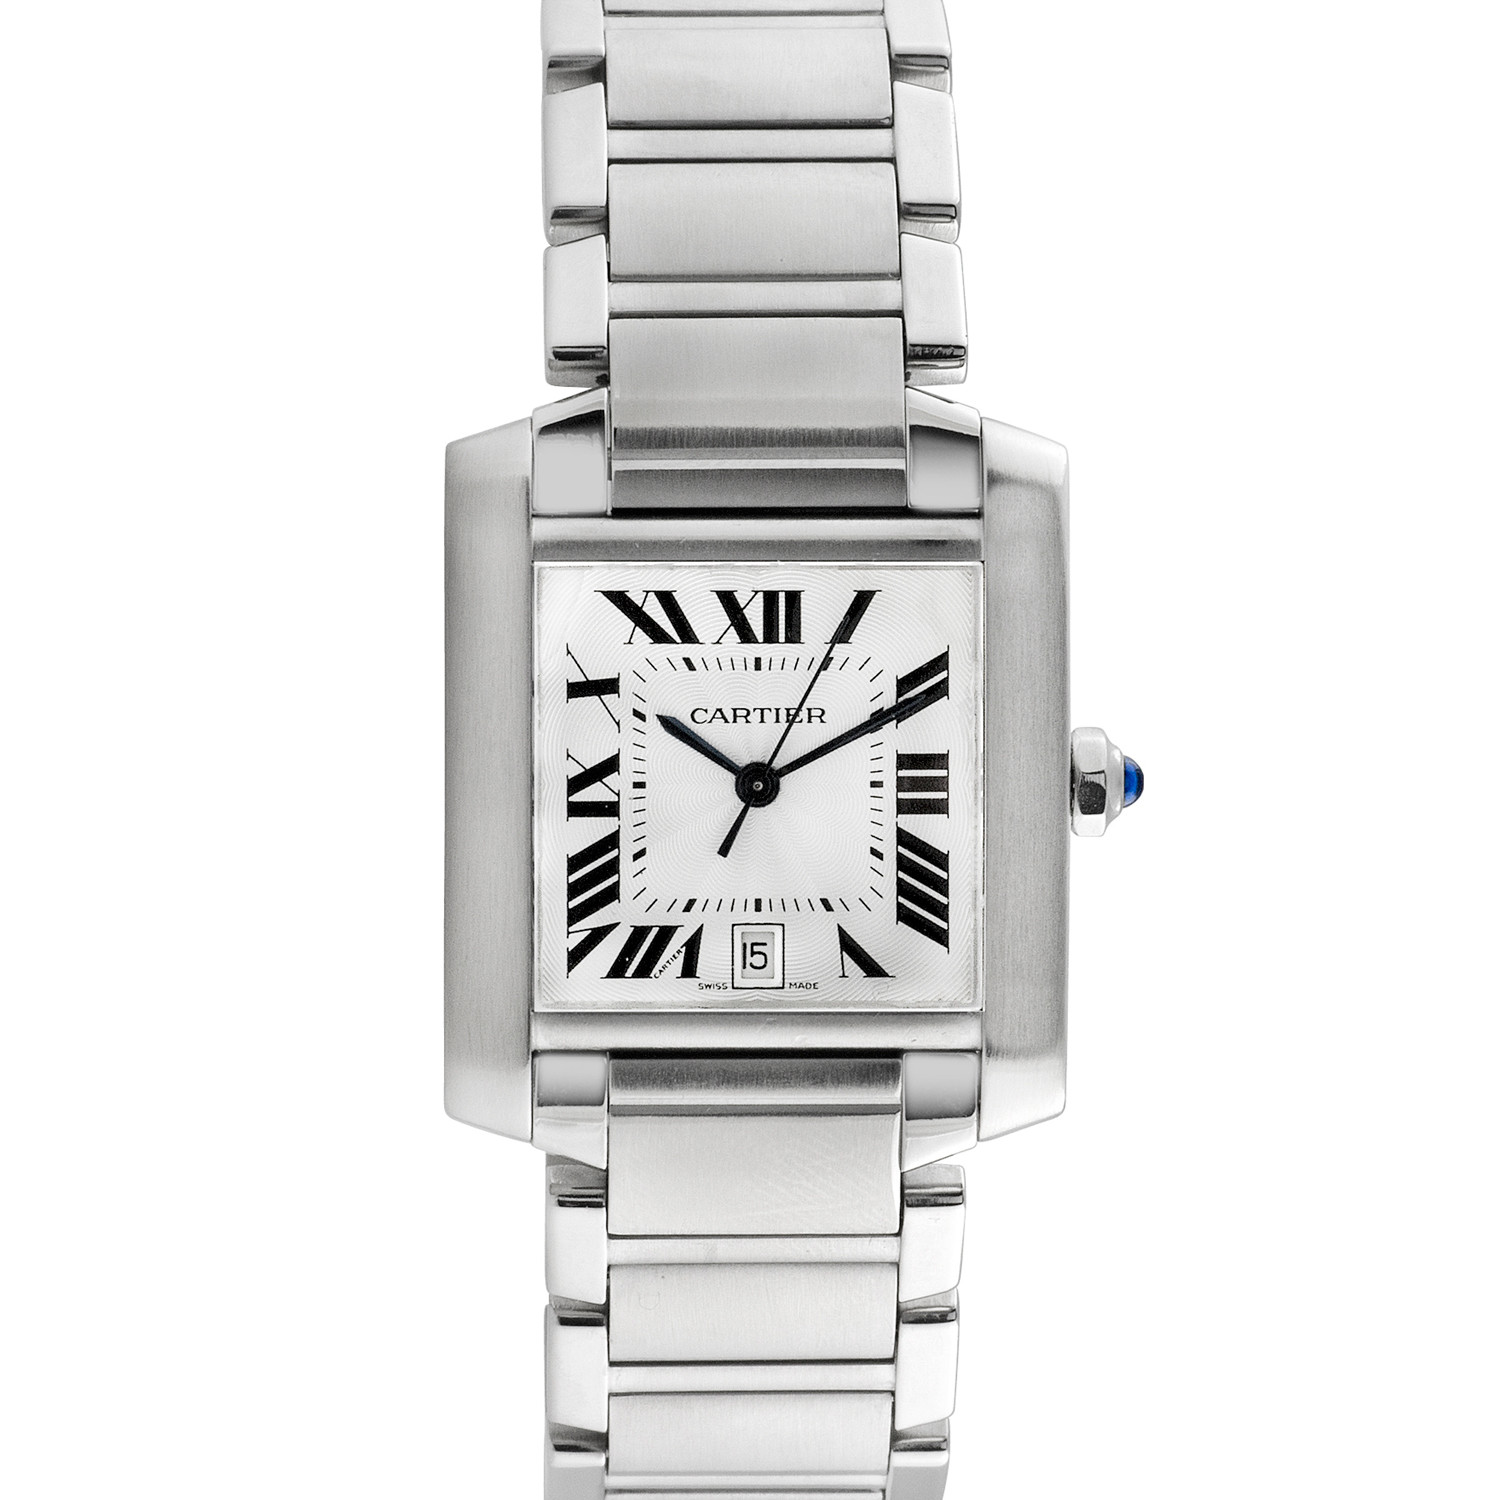 f493f2a3f299 Cartier Vintage Watches - The Jeweler of Kings - Touch of Modern